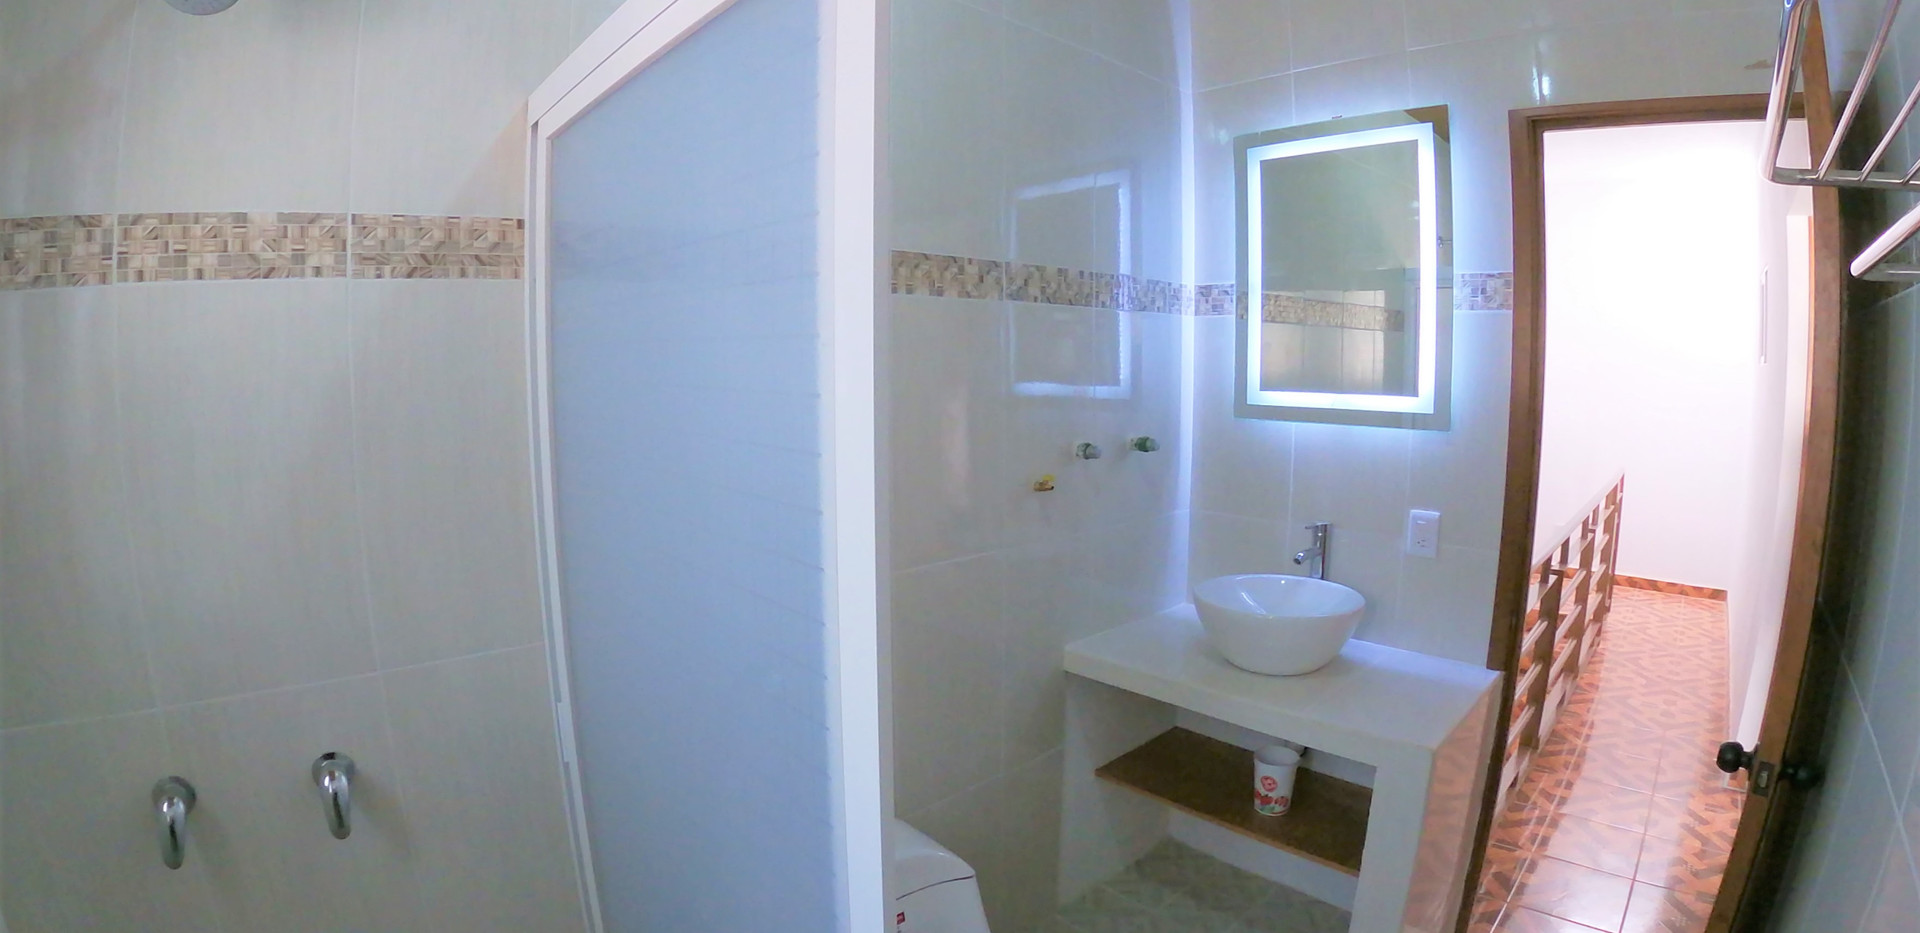 Second bathroom in third floor